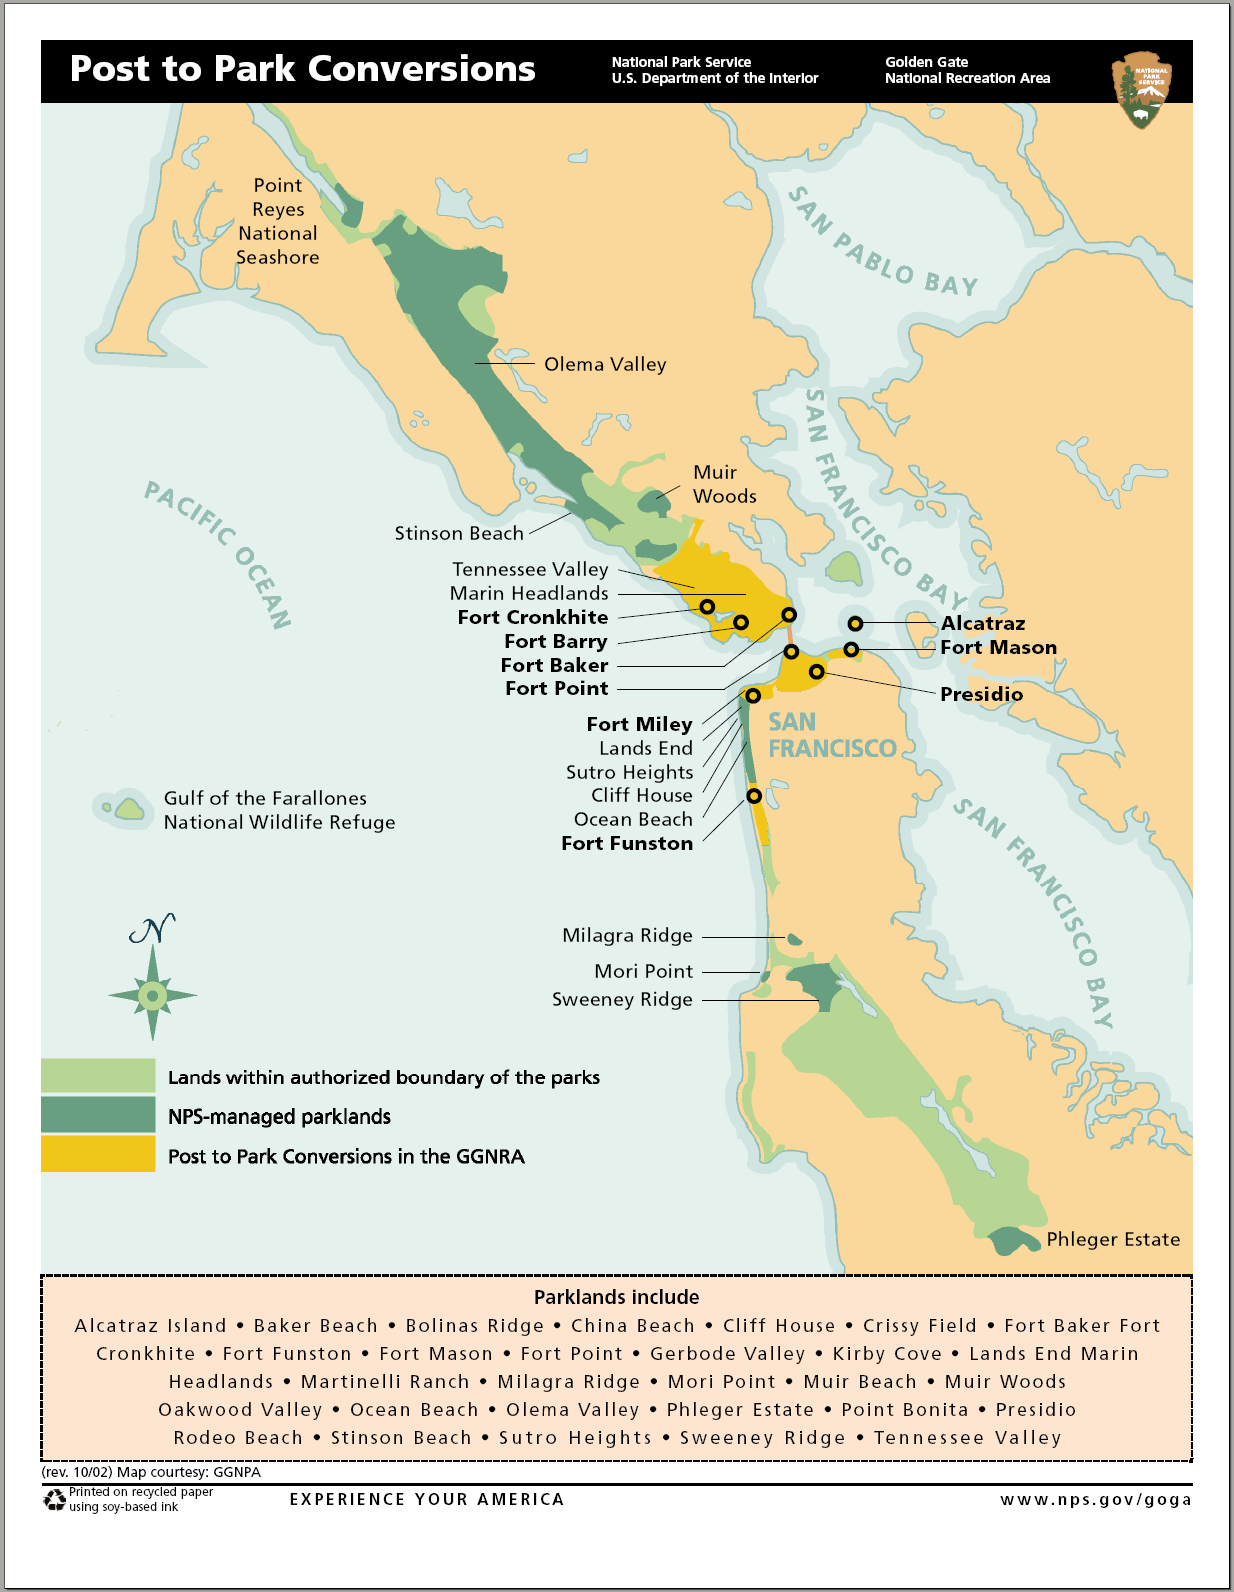 File:Map of Golden Gate National Recreation Area.png - Wikipedia on golden gate recreation area map, pietermaritzburg map, gateway national park map, golden gate recreation park, florida national park map, big cypress national park map, royal natal national park map, johannesburg map, eastern cape map, key west national park map, george map, colorado state parks map, golden gate university campus map, golden gate canyon trail map, lake mead national park map, biscayne bay national park map, santa monica mountains national park map, angel island state park map, pier 39 map, fisherman's wharf map,